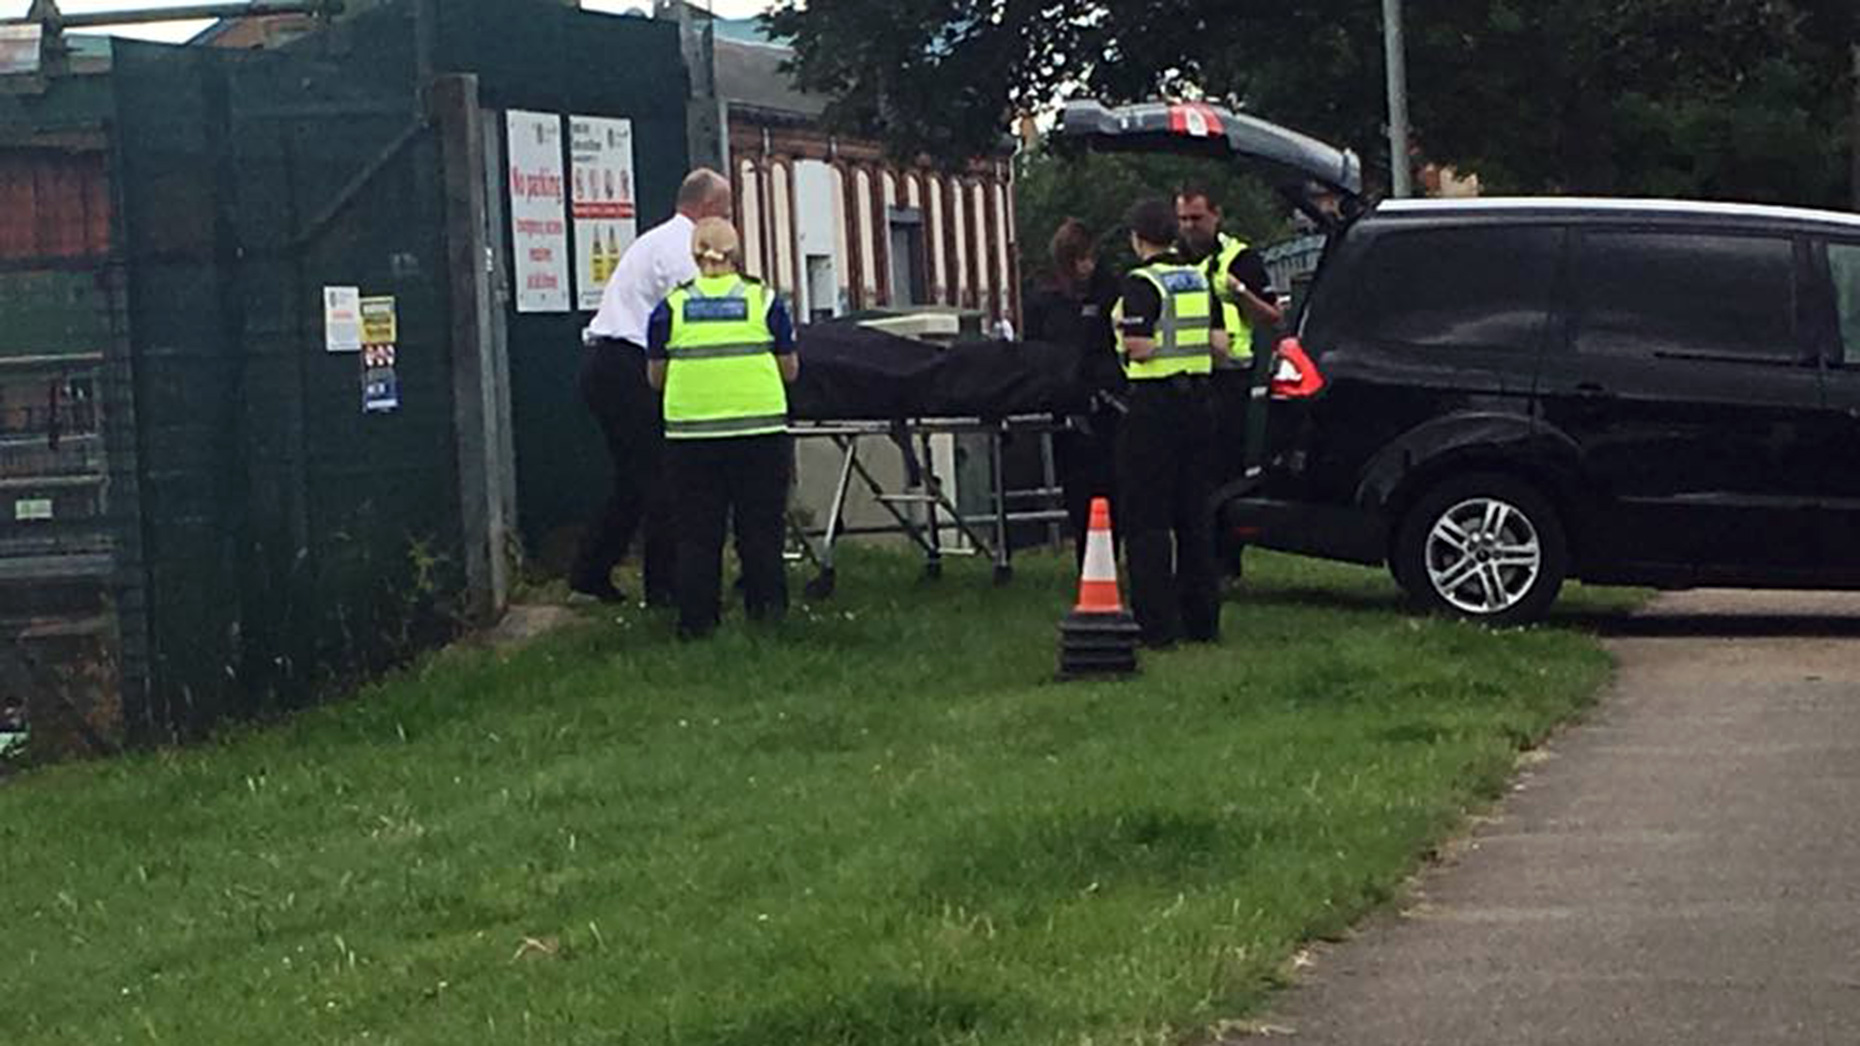 The body was recovered from River Witham in Lincoln. Photo: C A Sandford